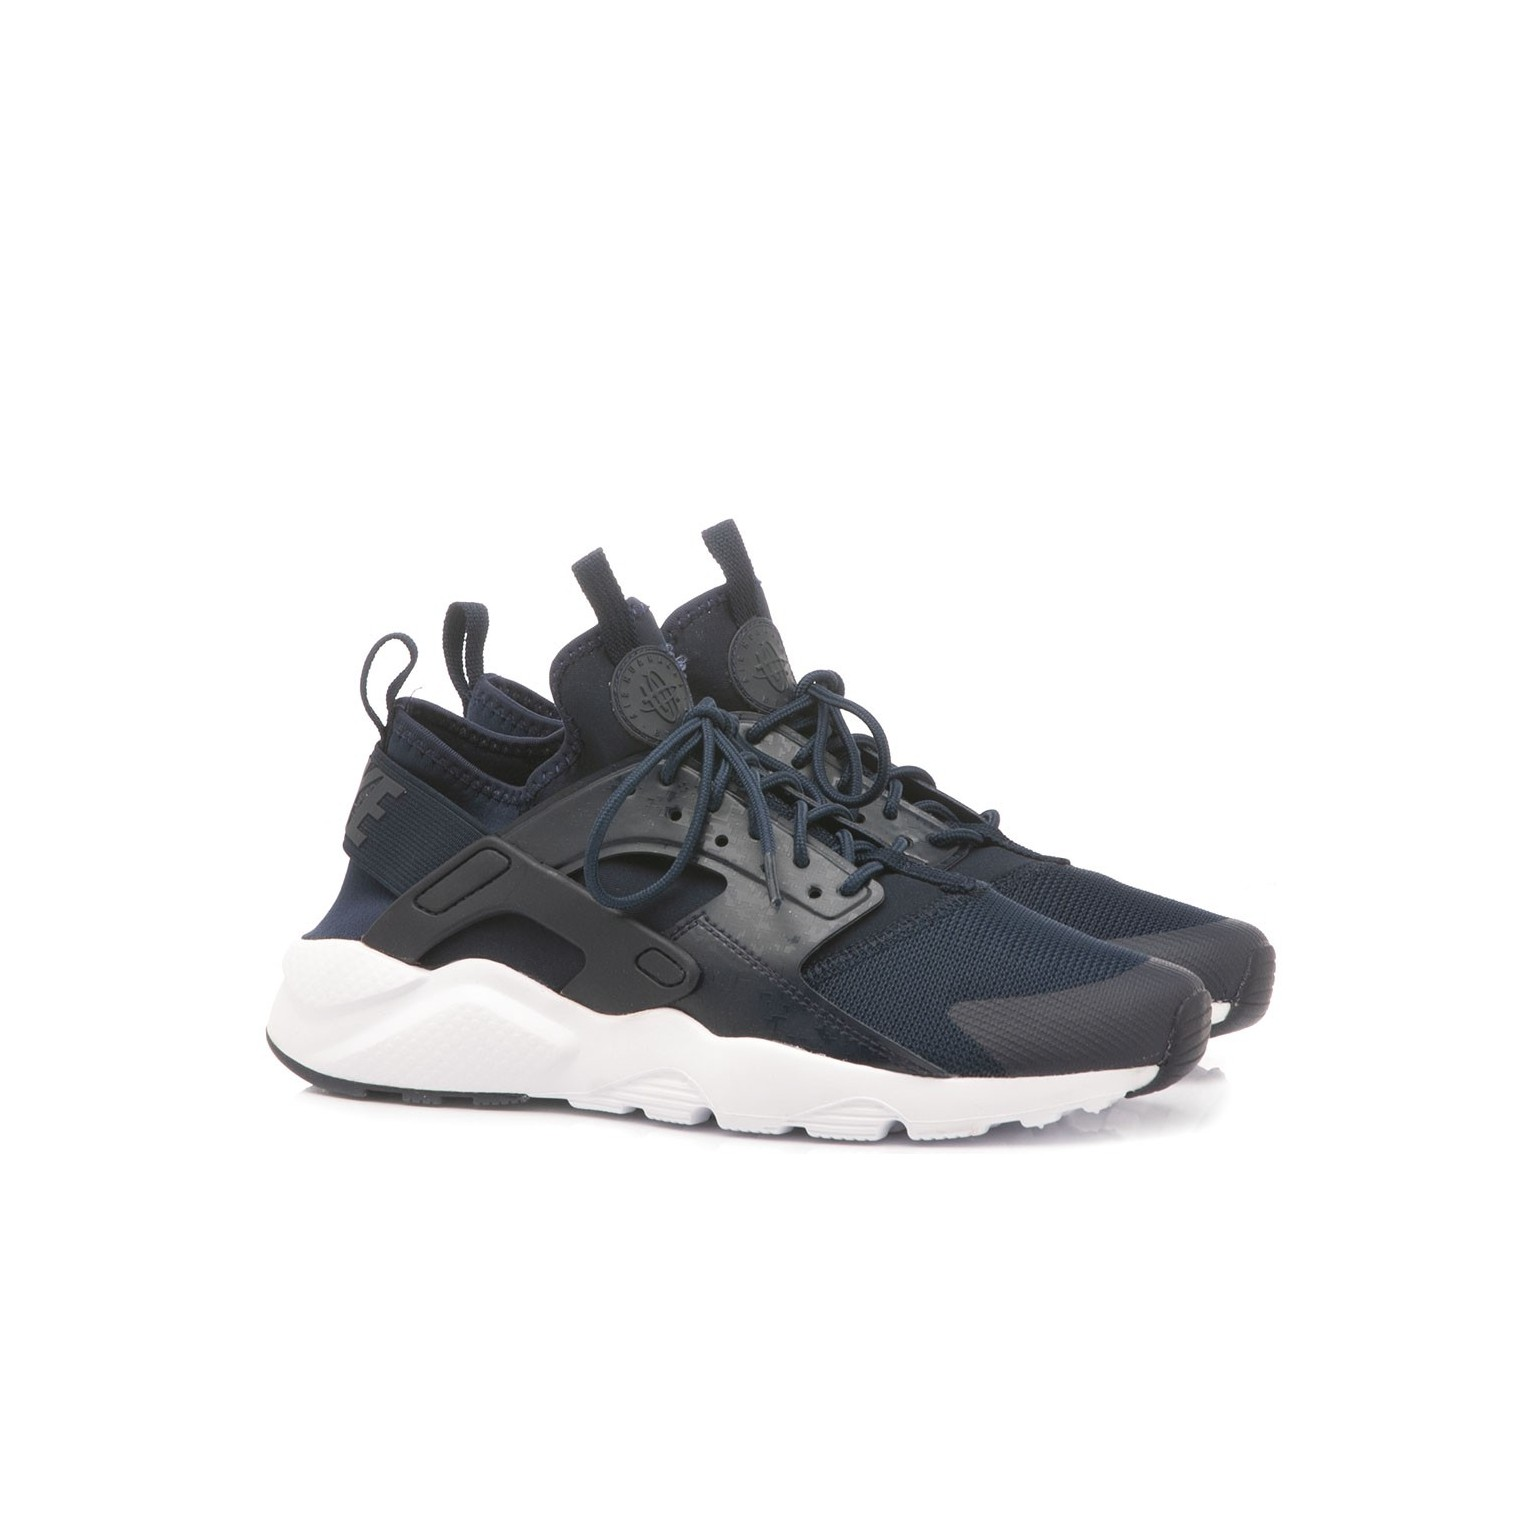 Nike Children's Sneakers Huarache Run Ultra PS